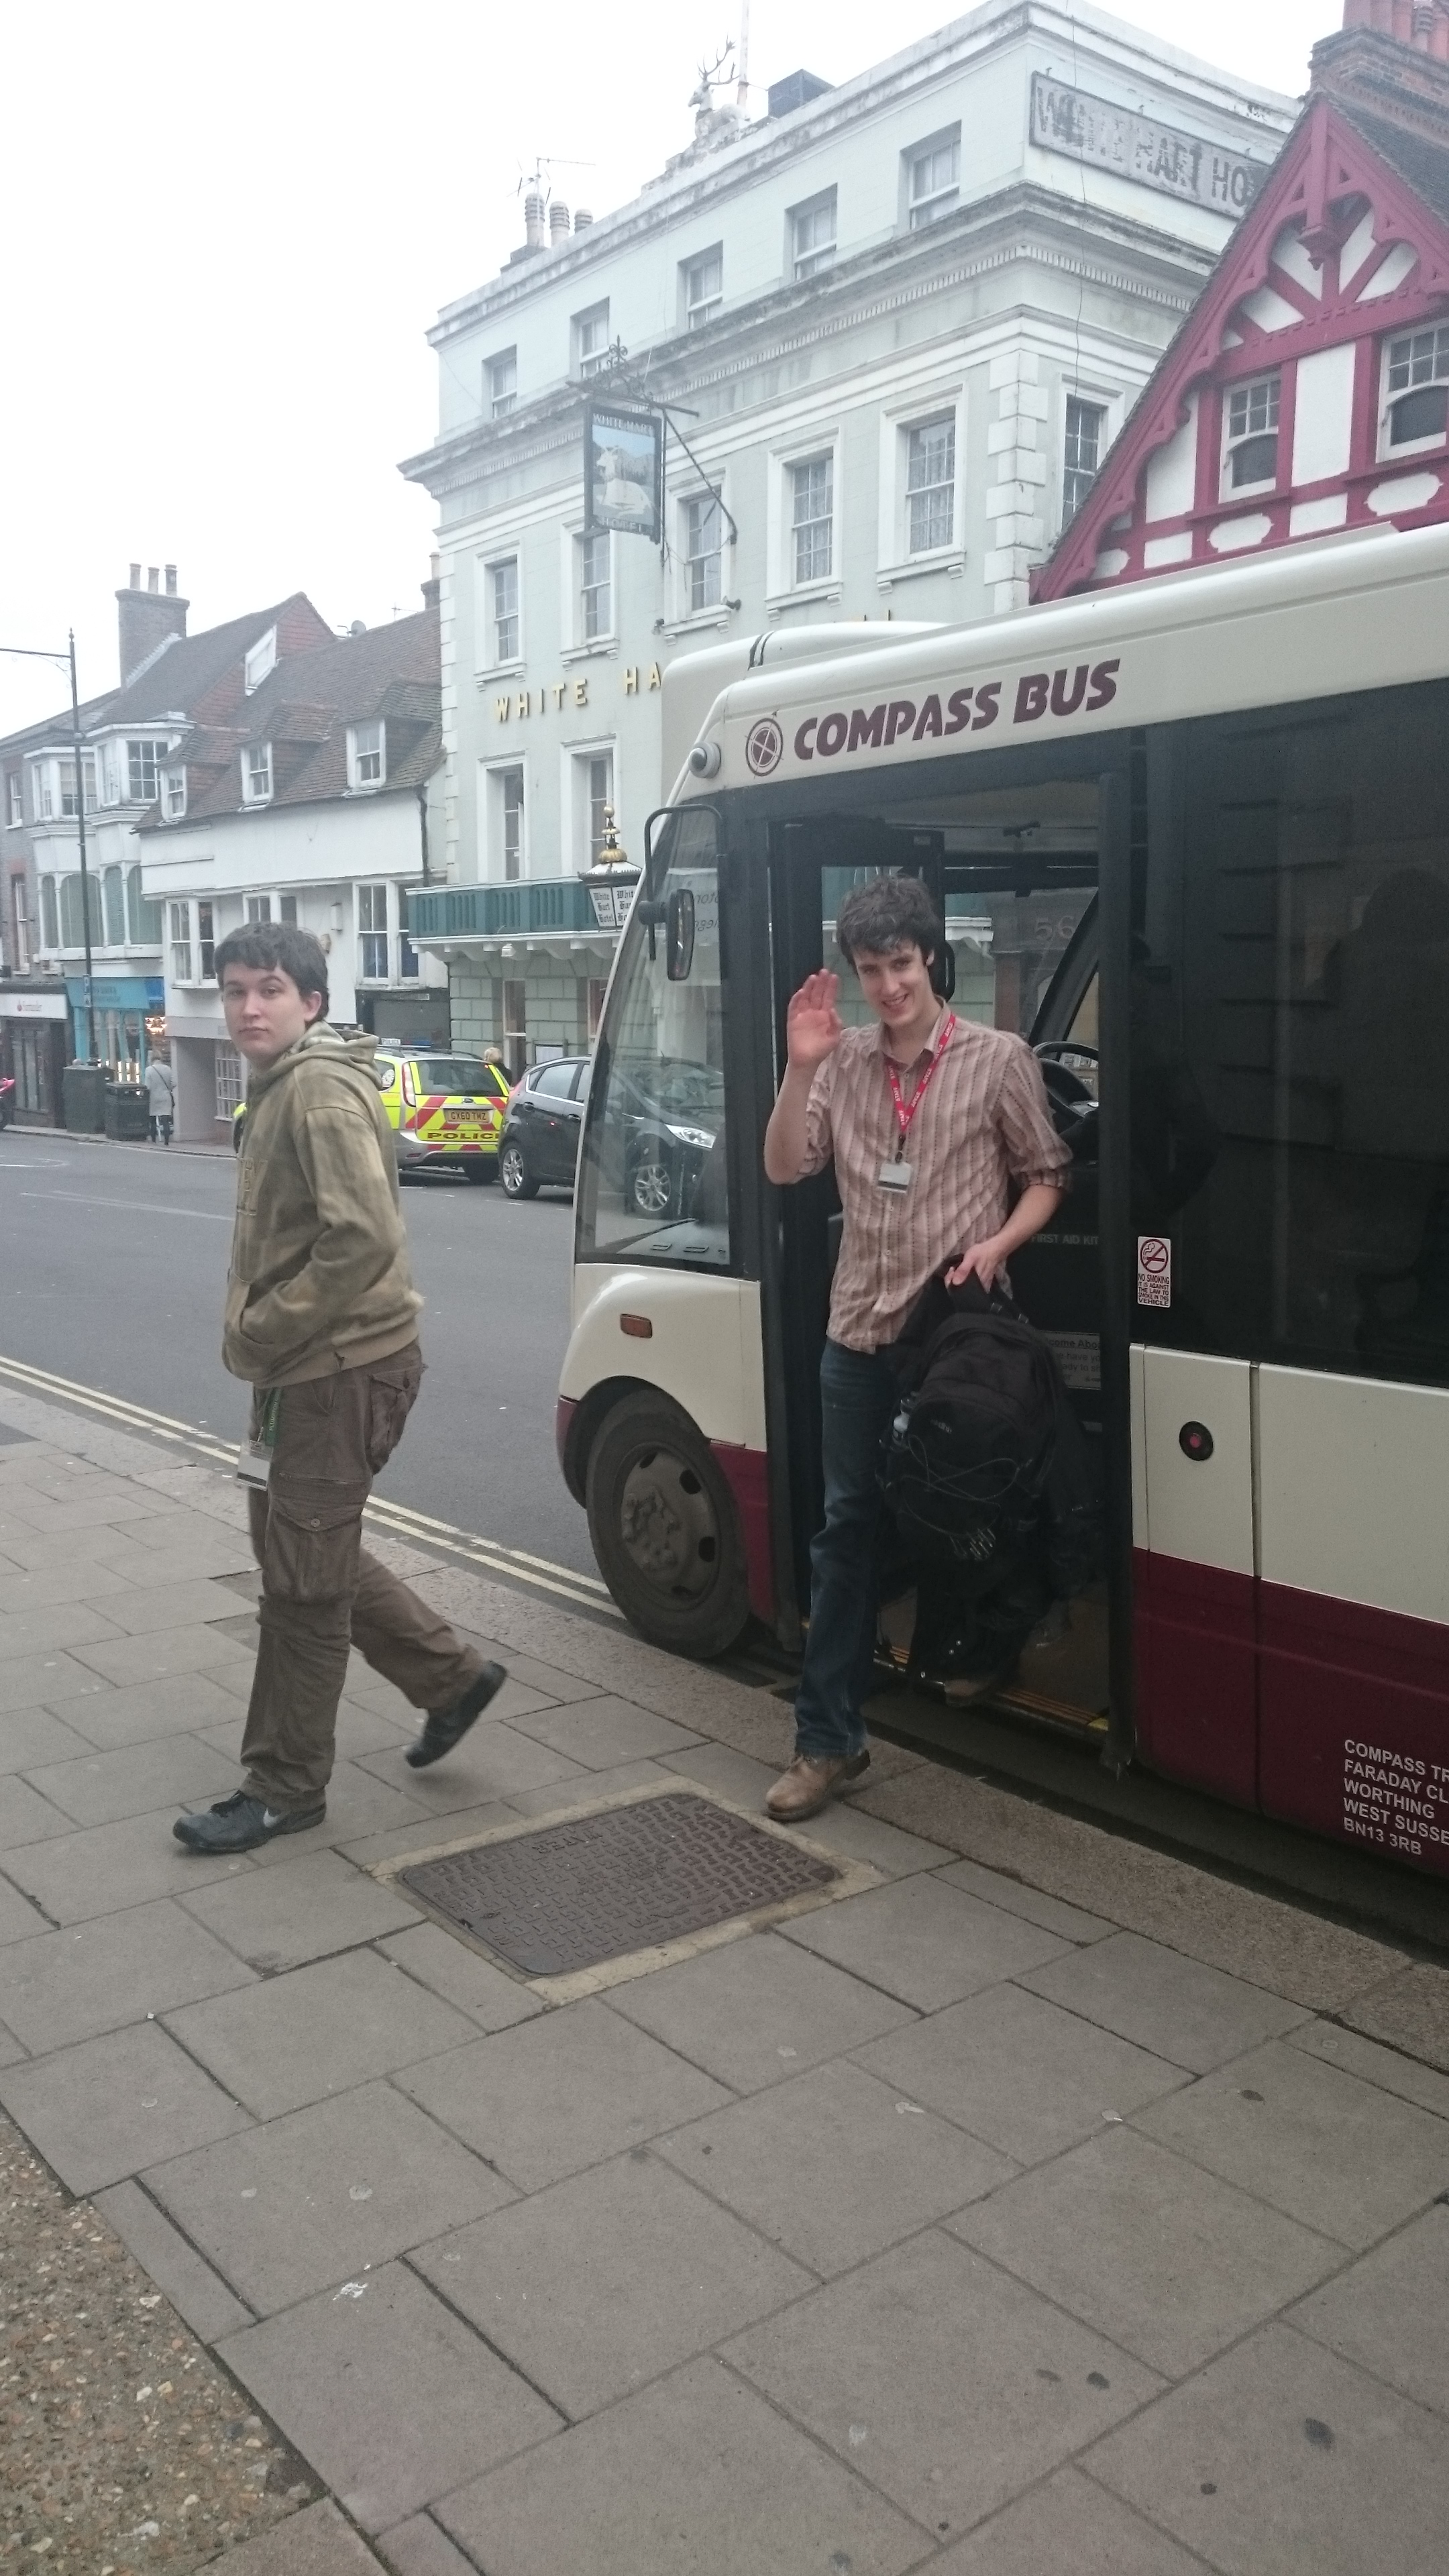 Plumpton interns arriving in Lewes by bus